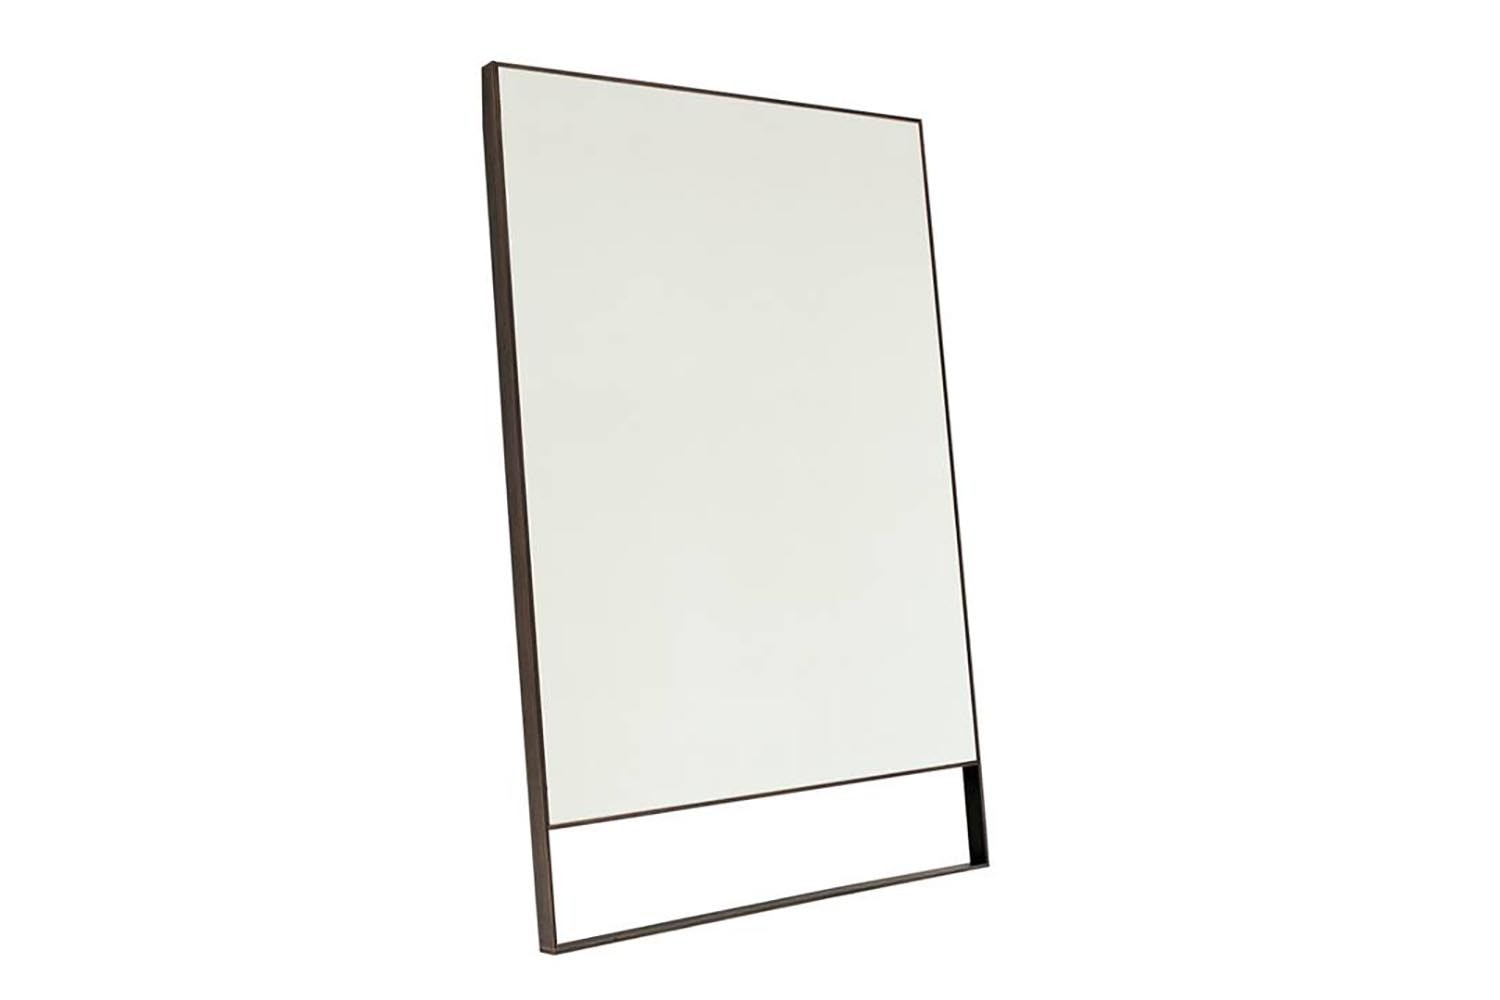 Psiche Wide Mirror by Antonio Citterio for Maxalto